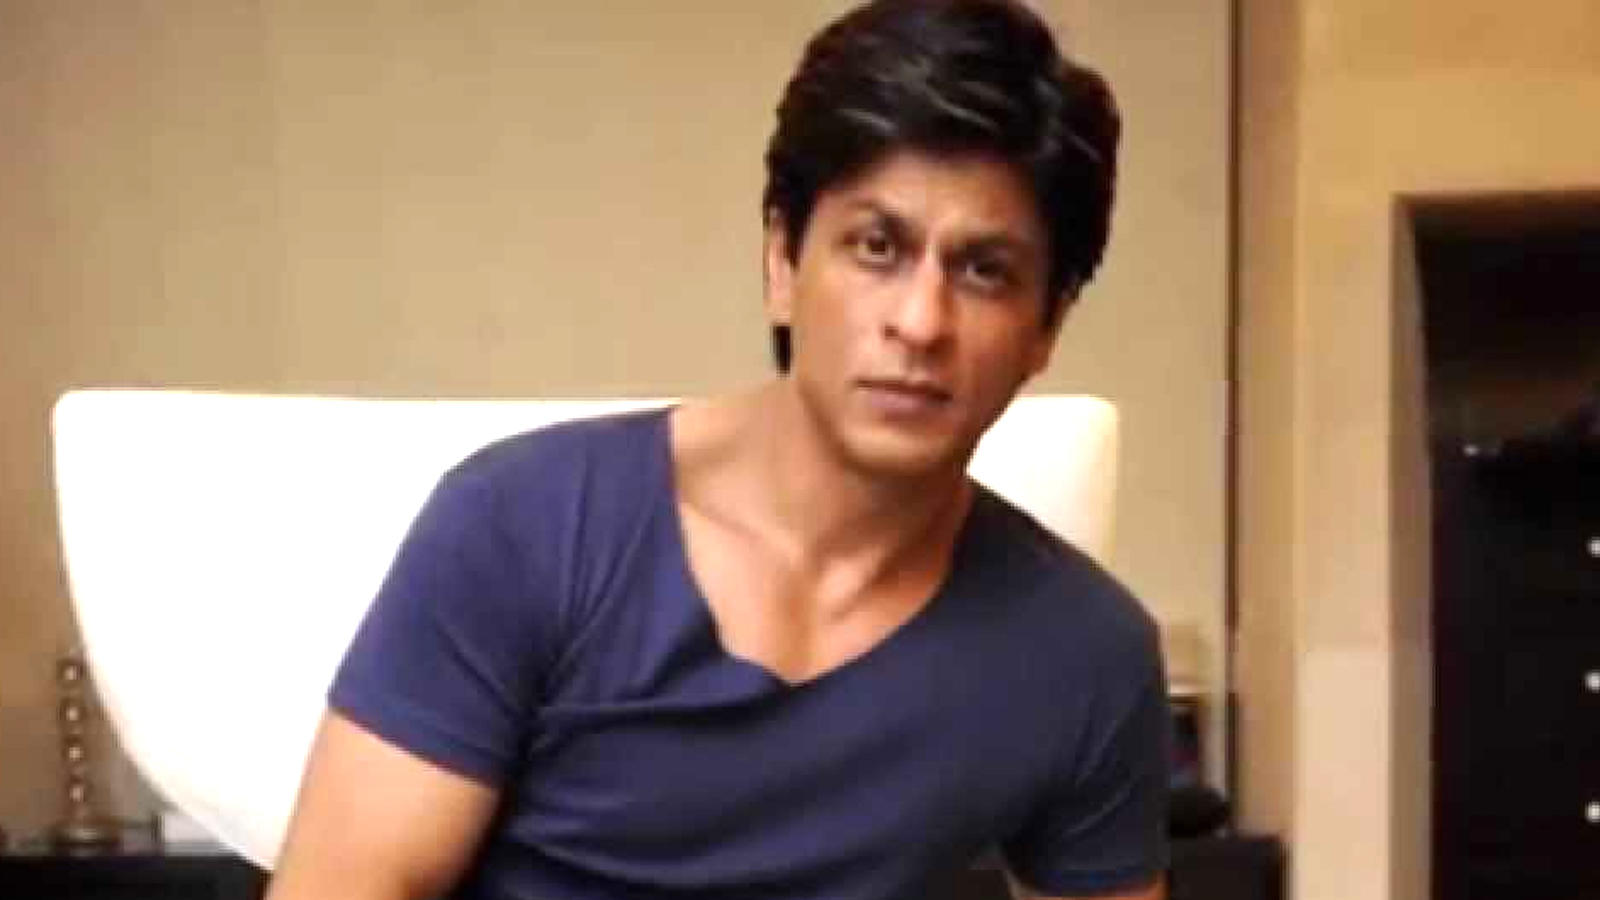 shah-rukh-khan-wins-the-internet-with-his-reply-on-religion-says-we-are-indians-and-thats-our-religion